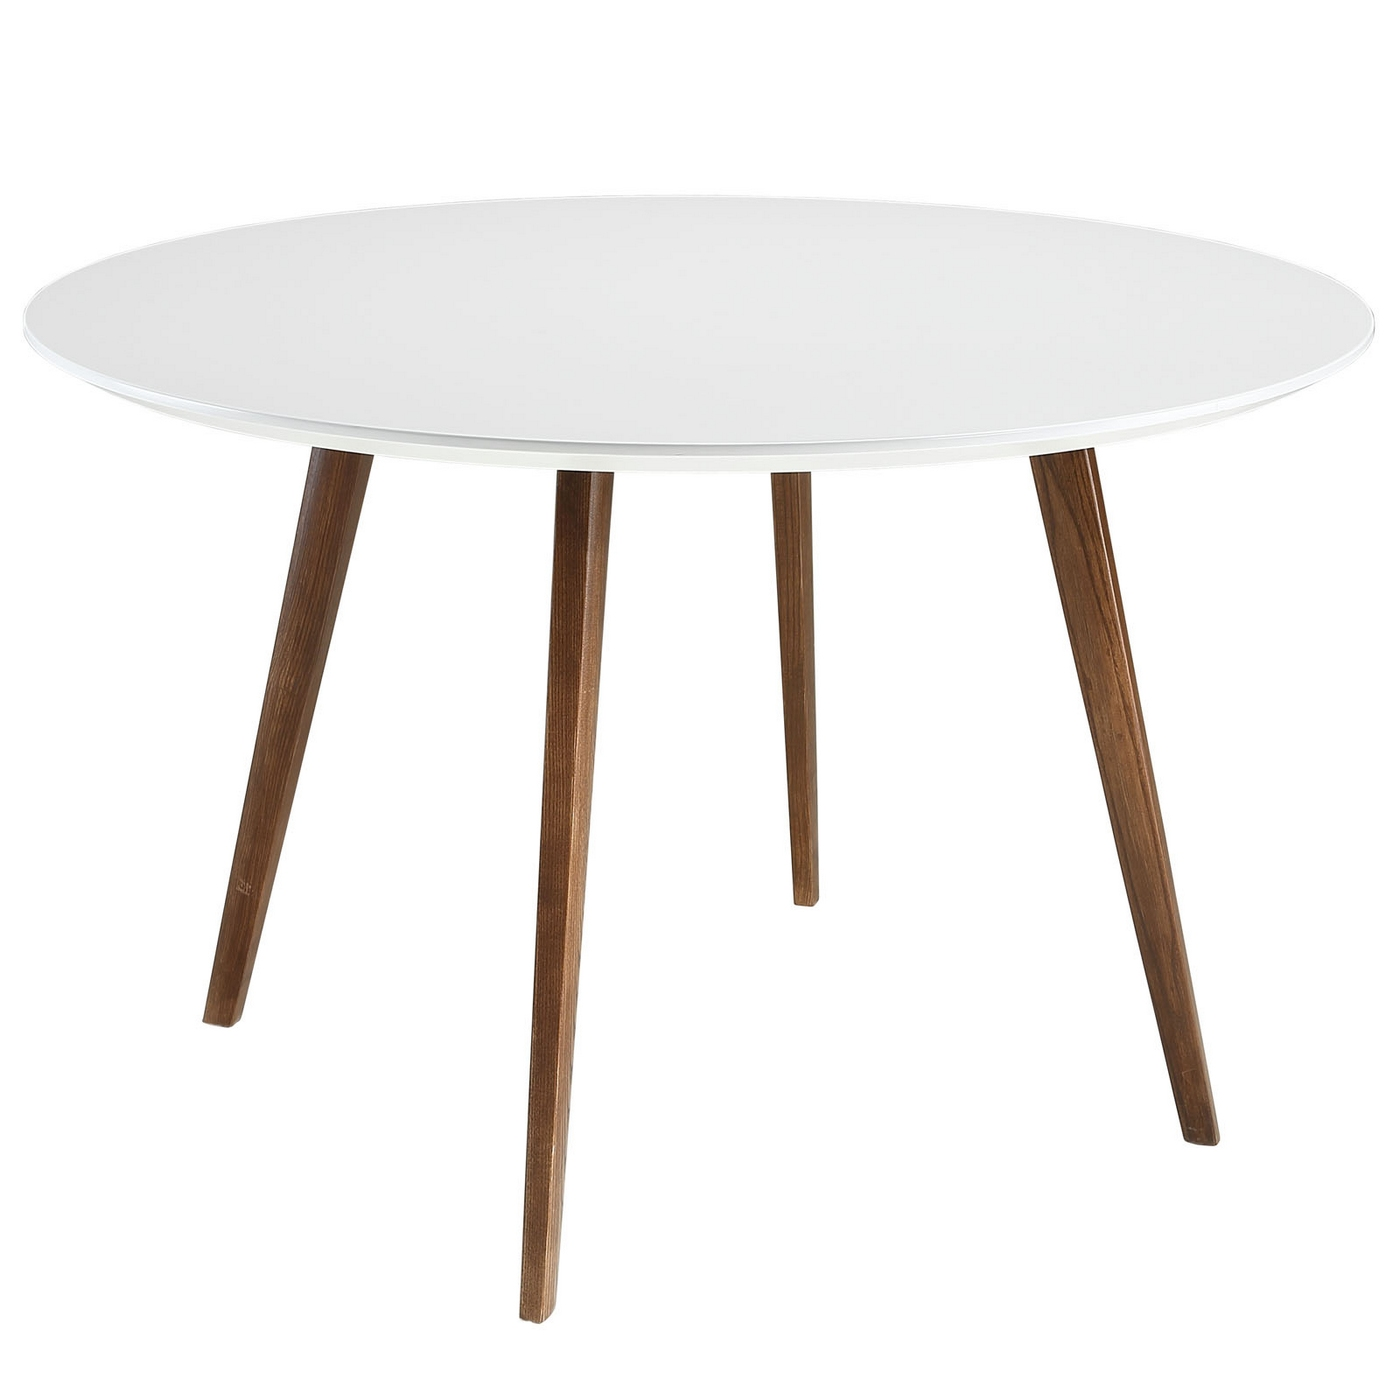 Round Table White Dining Wood